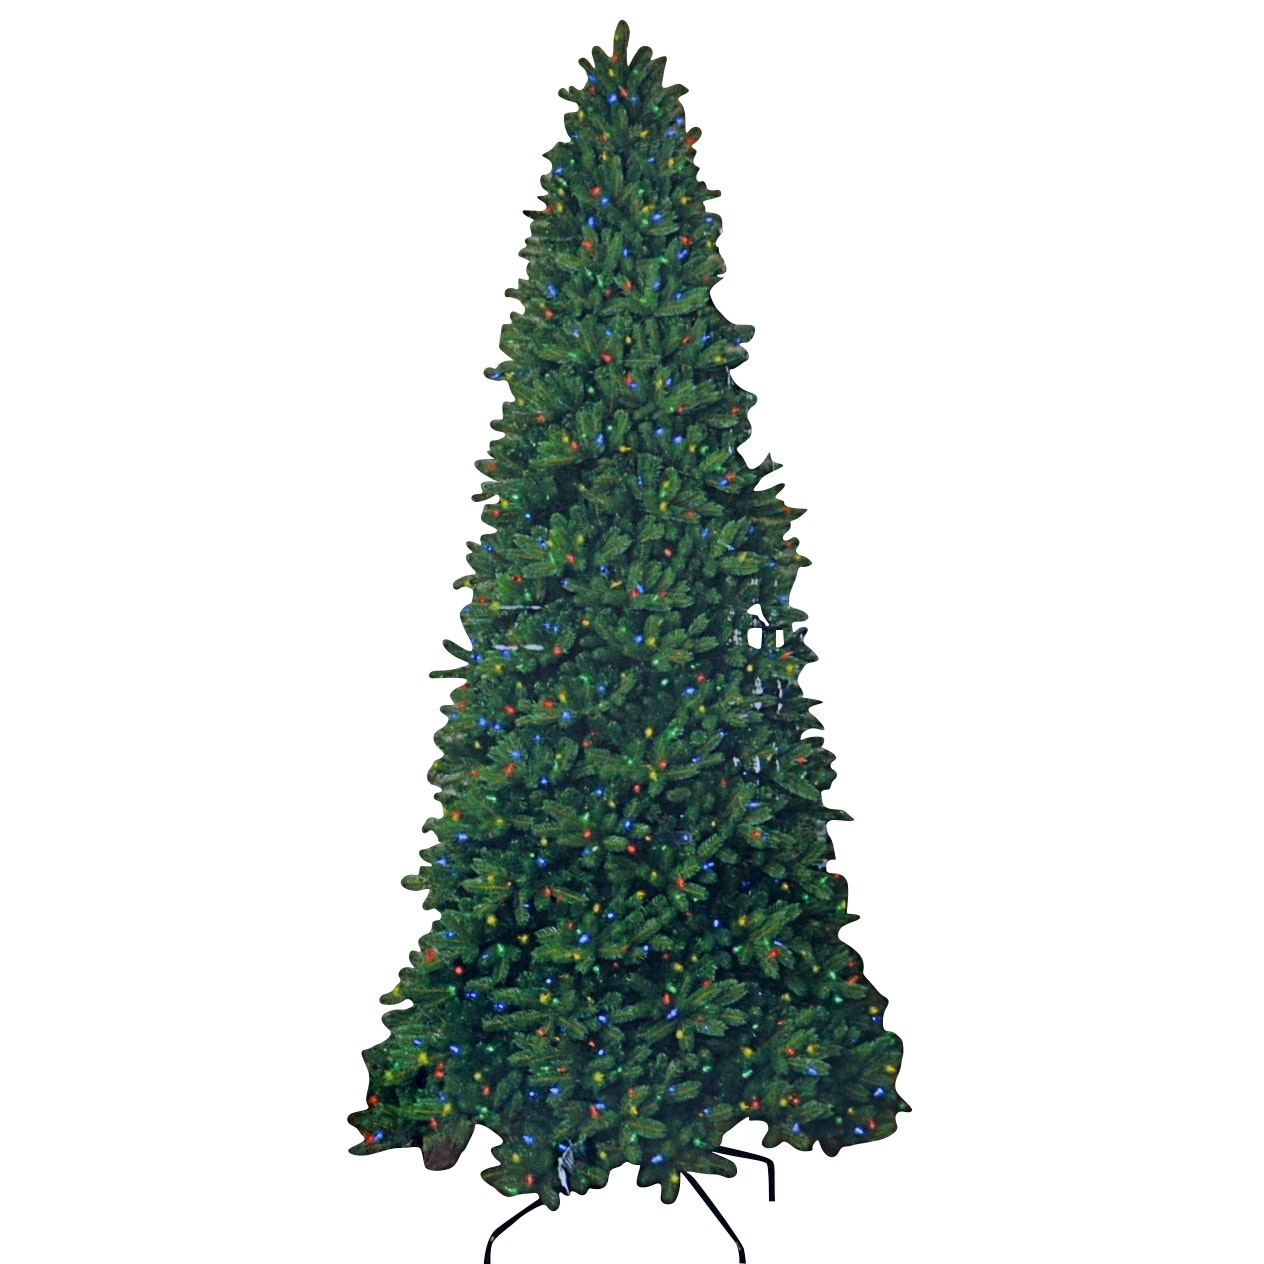 12' Faux Evergreen Christmas Tree with 1200 Color Choice LED Lights and Remote